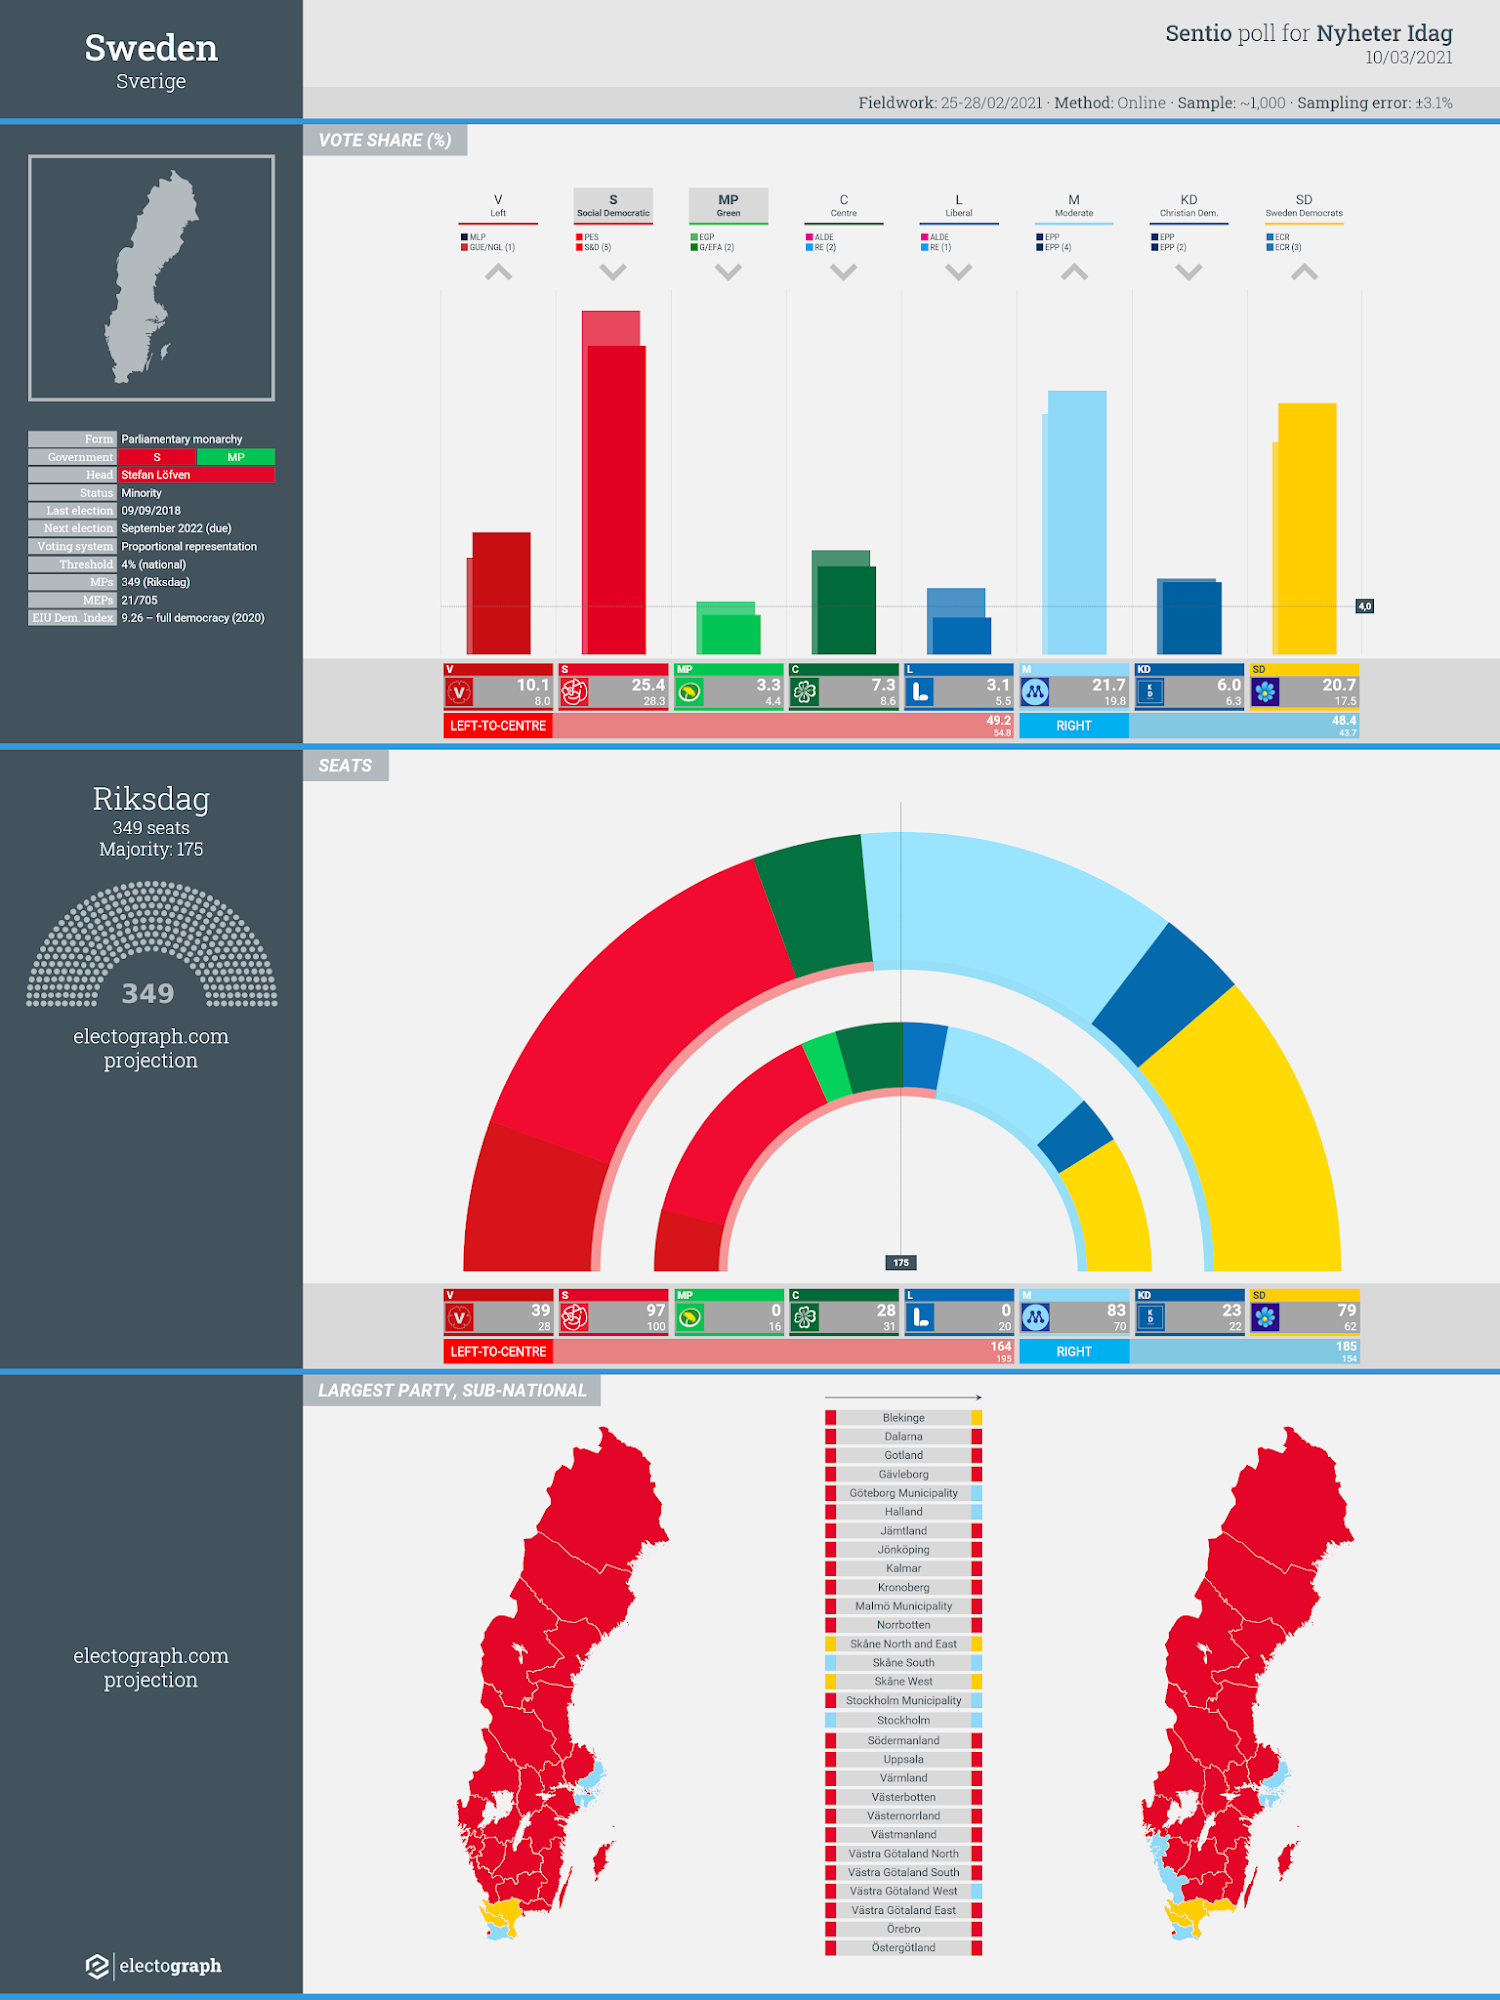 SWEDEN: Sentio Research poll chart for Nyheter Idag, 10 March 2021